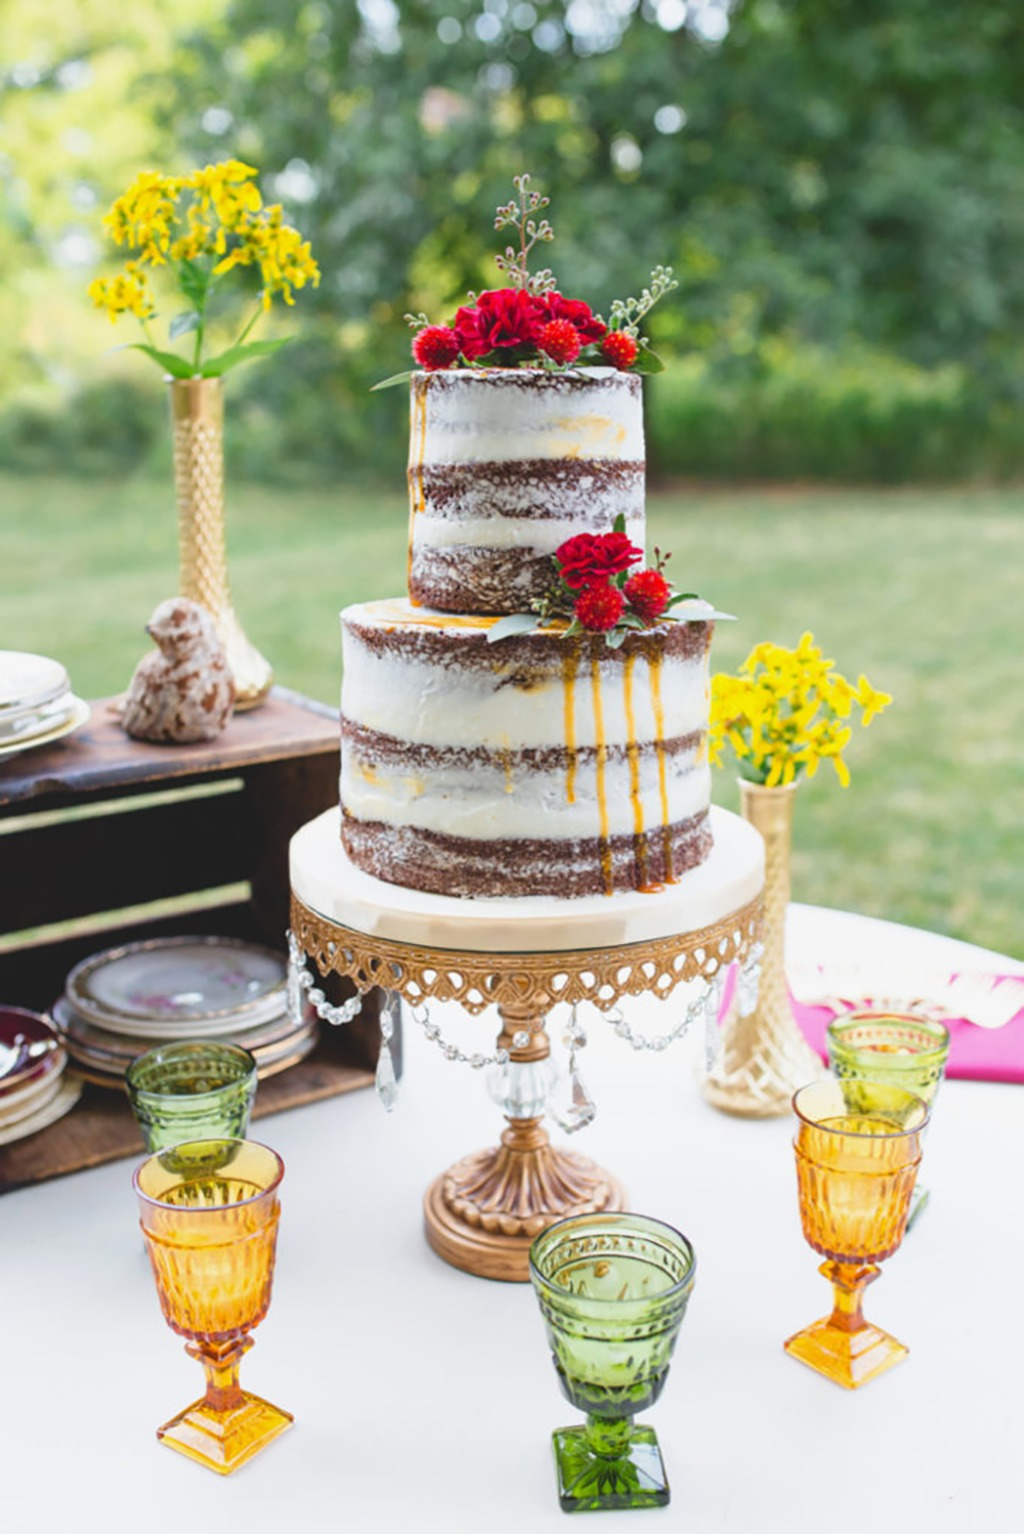 Fall Wedding Inspiration ... Chocolate Naked Wedding Cake on Antique Gold Chandelier Cake Stand created by Opulent Treasures